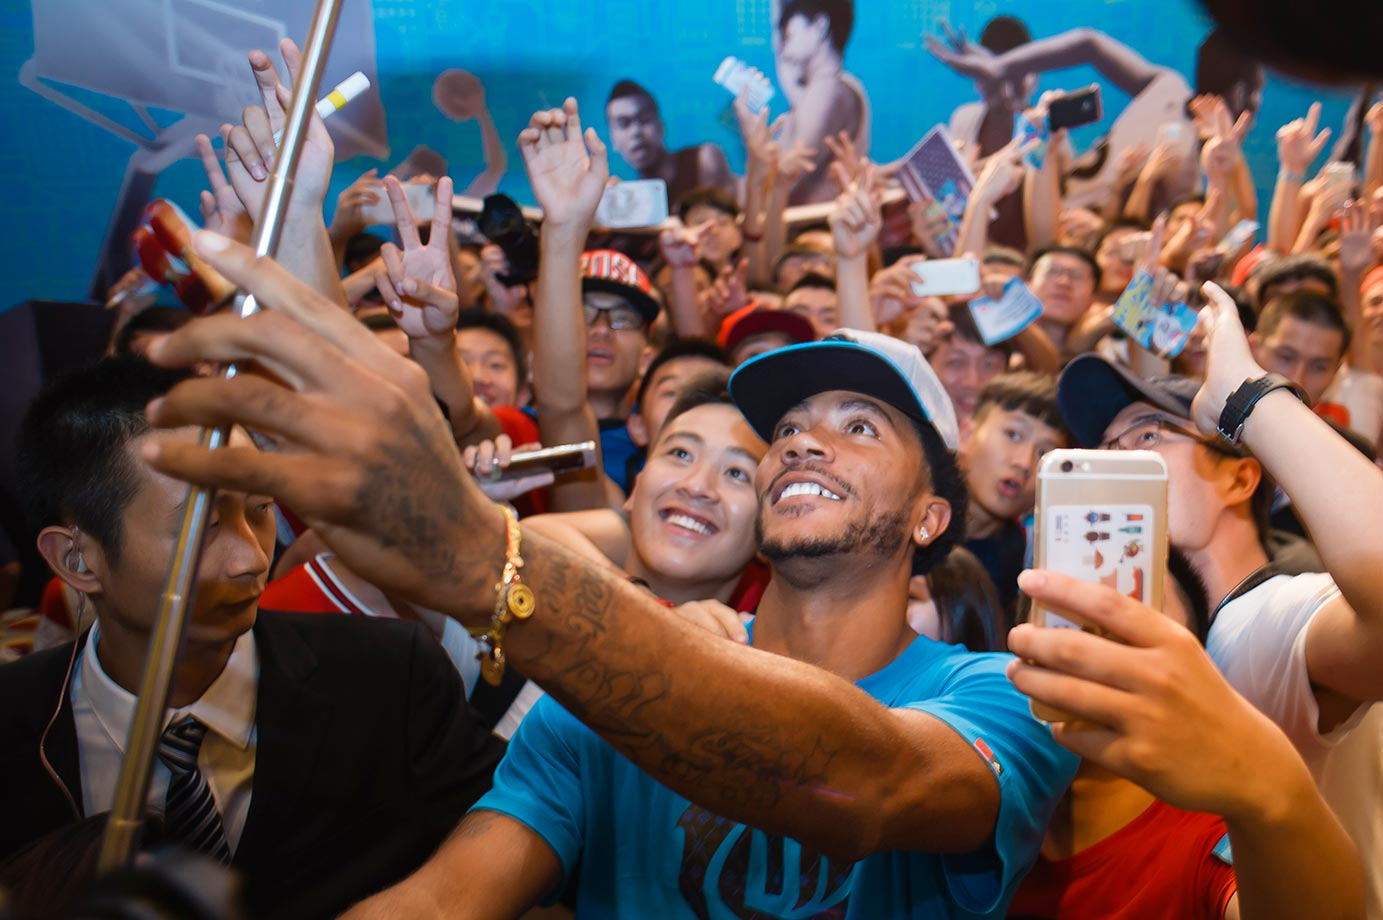 Derrick Rose takes a selfie with fans during a trip to China.